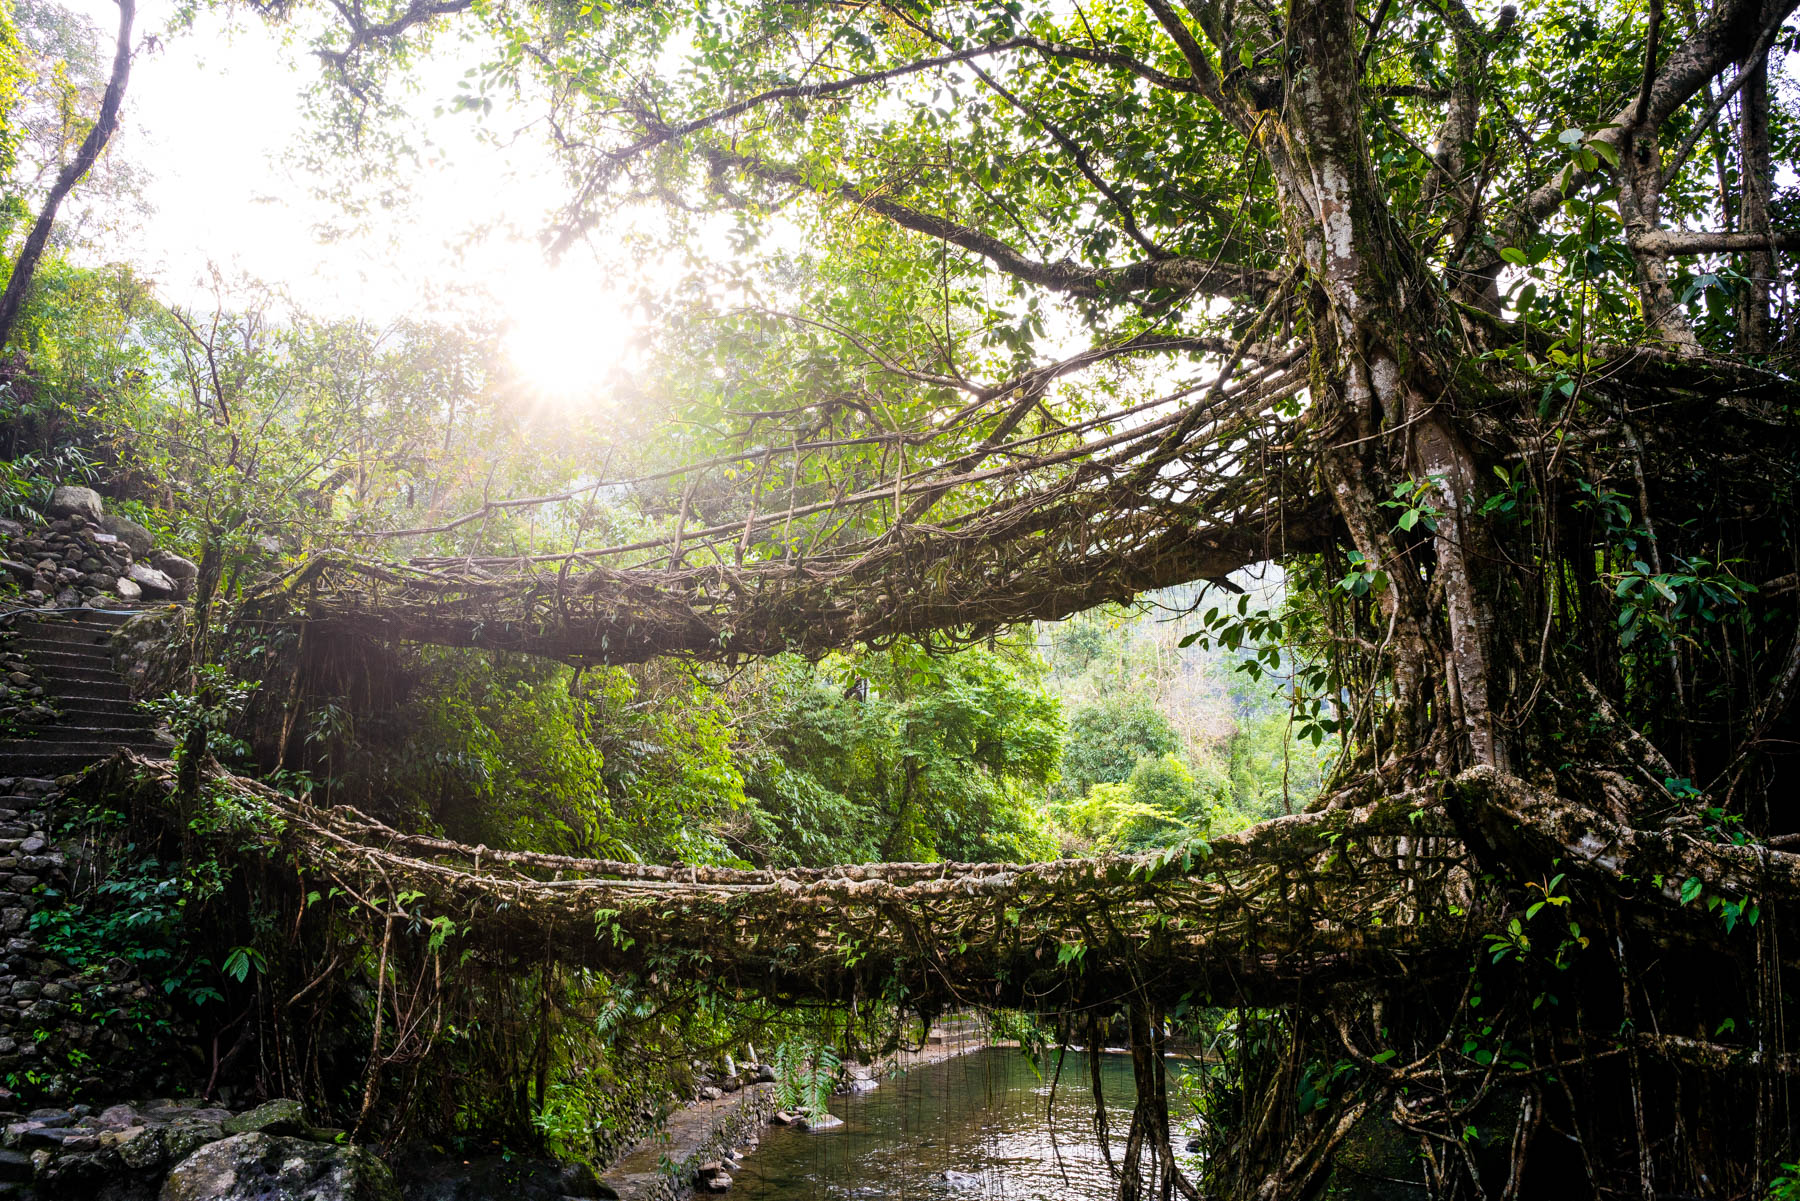 How to get from Guwahati to Shillong and Cherrapunjee in Meghalaya, India - Root bridge in Nongriat - Lost With Purpose